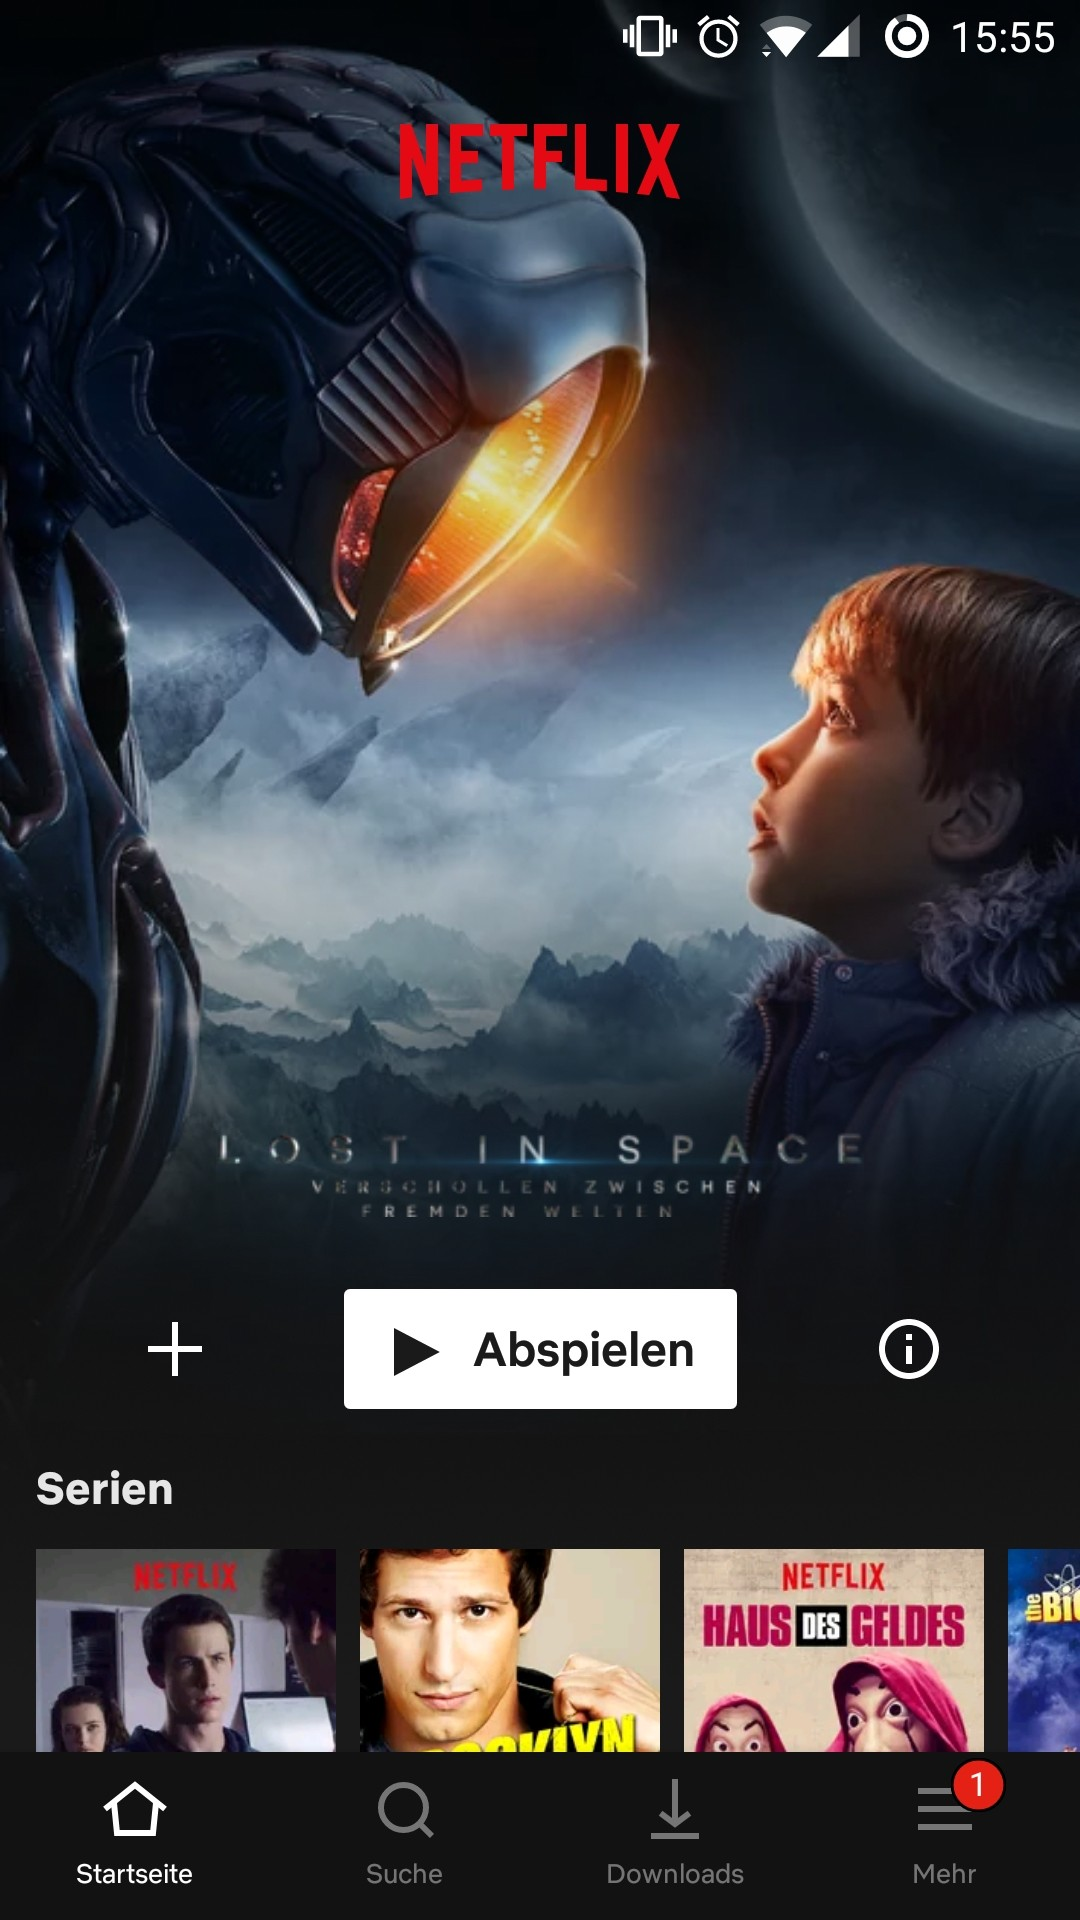 Screenshot 1 - Netflix (APK)